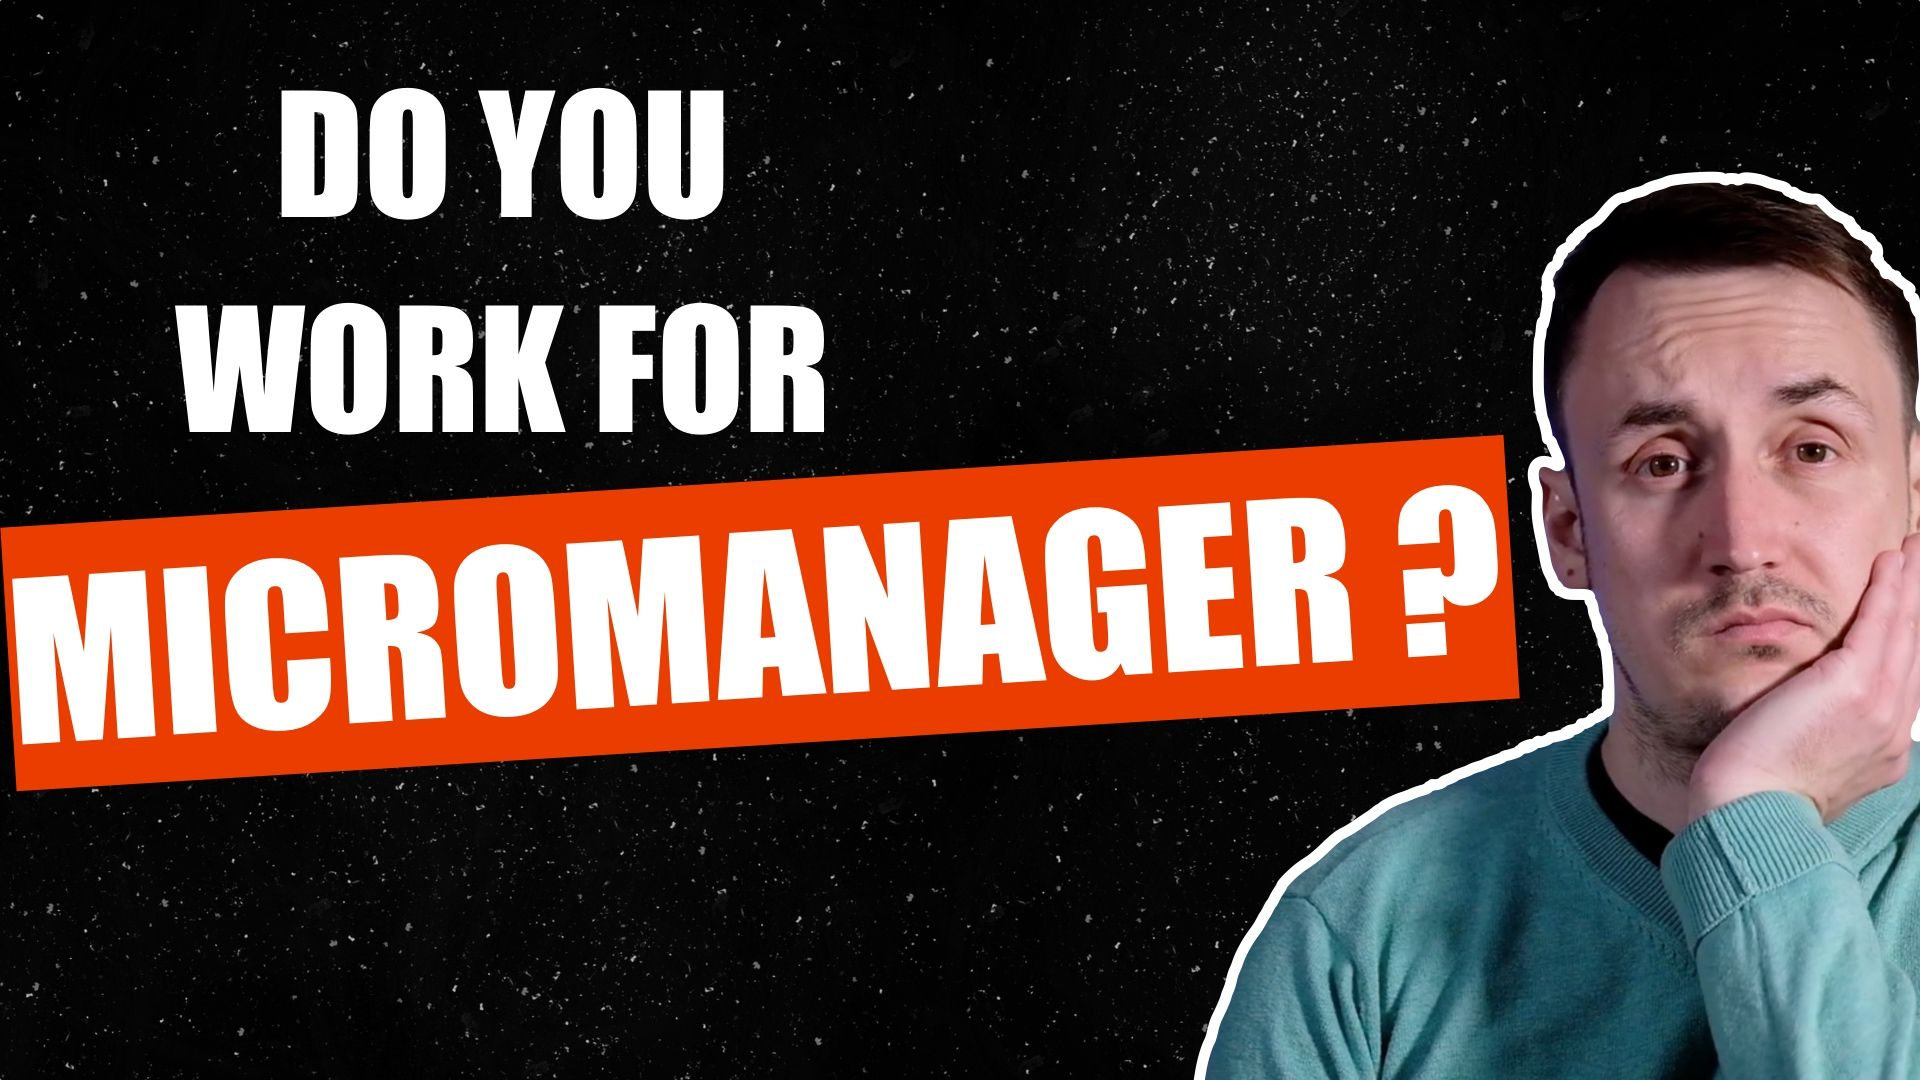 Is your boss a micromanager?